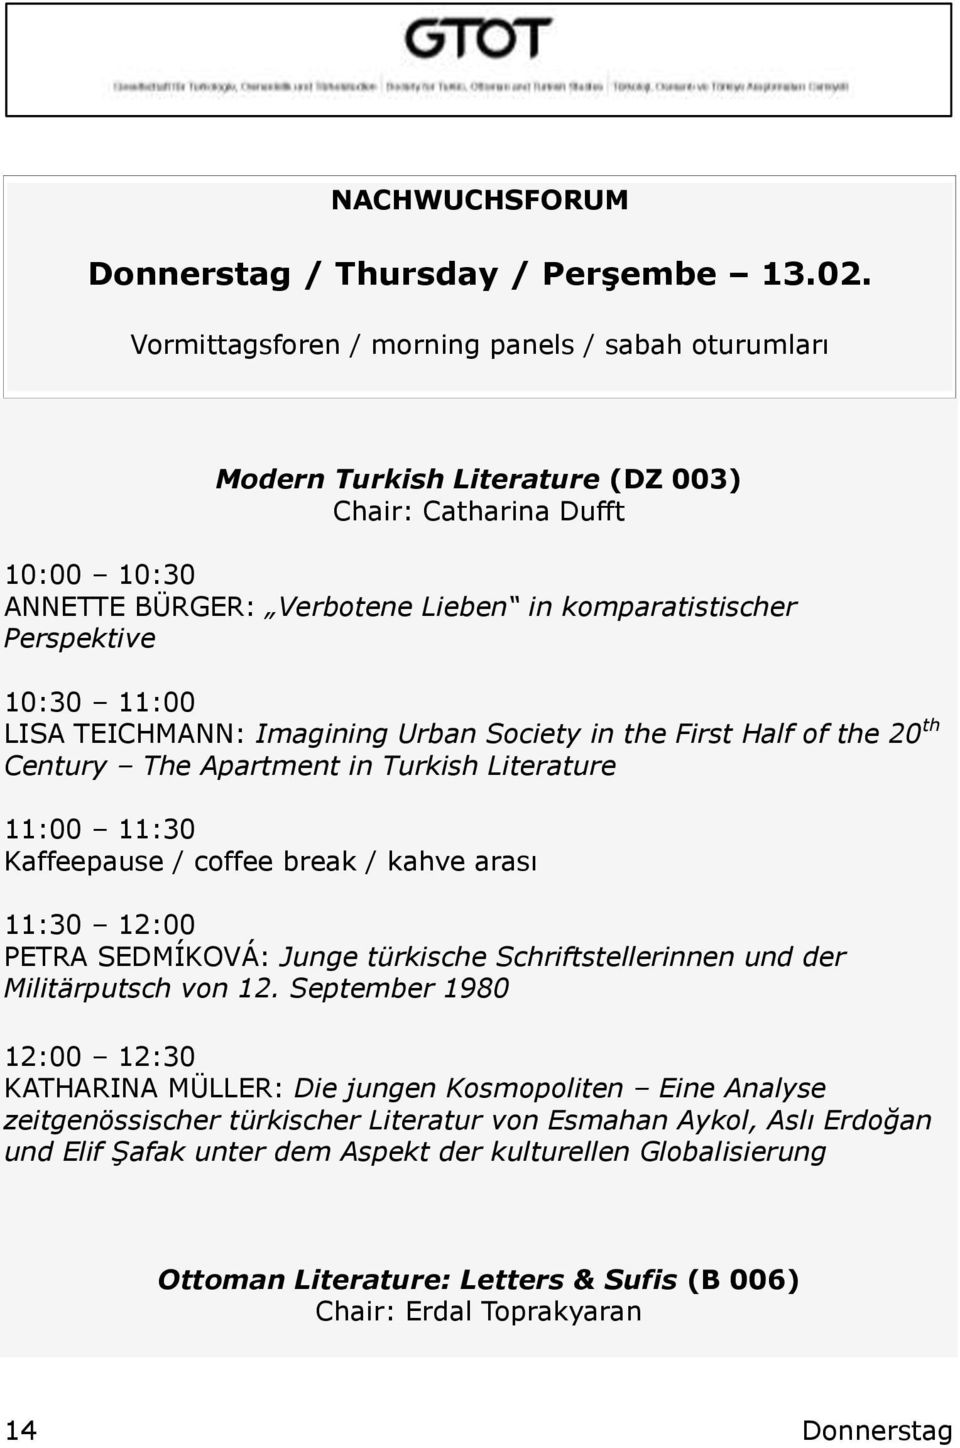 11:00 LISA TEICHMANN: Imagining Urban Society in the First Half of the 20 th Century The Apartment in Turkish Literature 11:00 11:30 11:30 12:00 PETRA SEDMÍKOVÁ: Junge türkische